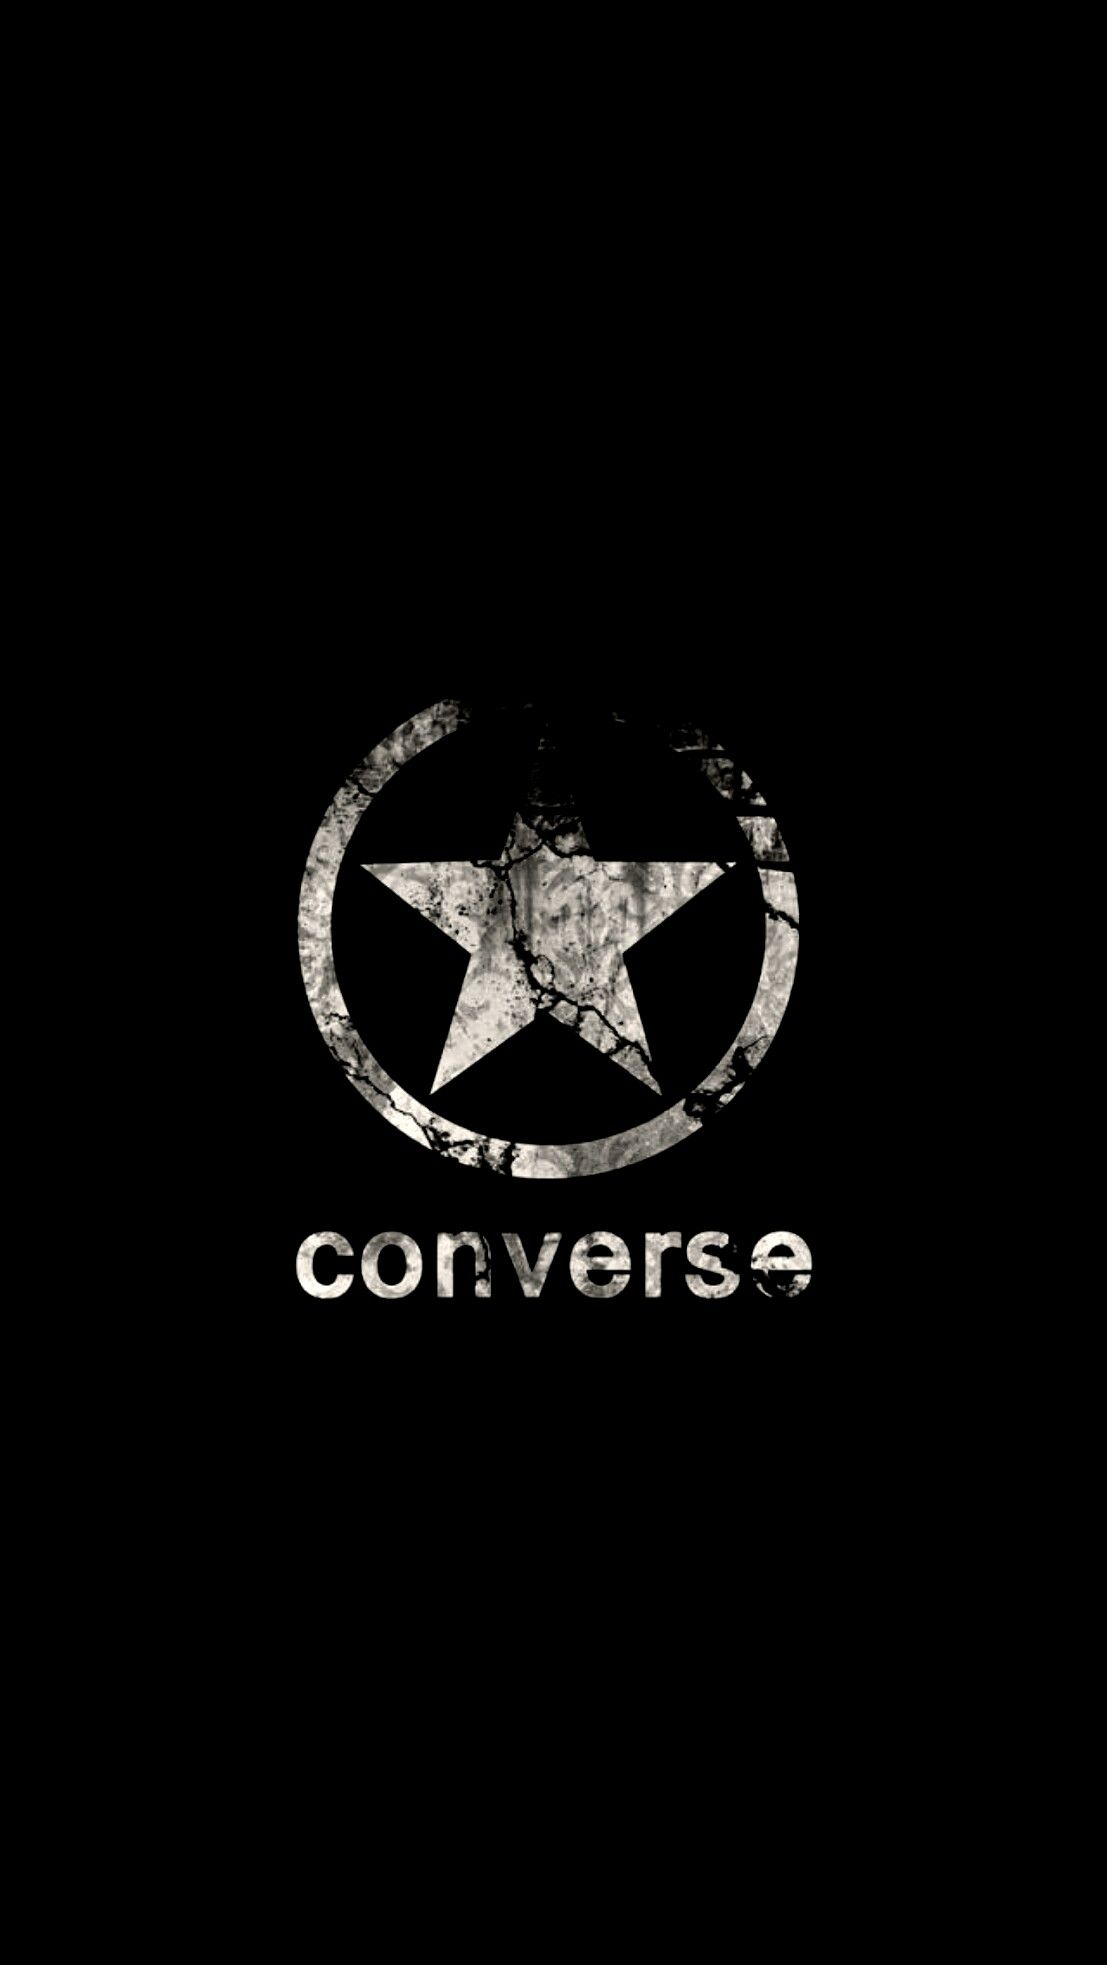 #converse #black #wallpaper #iPhone #android | Wallpapers ...